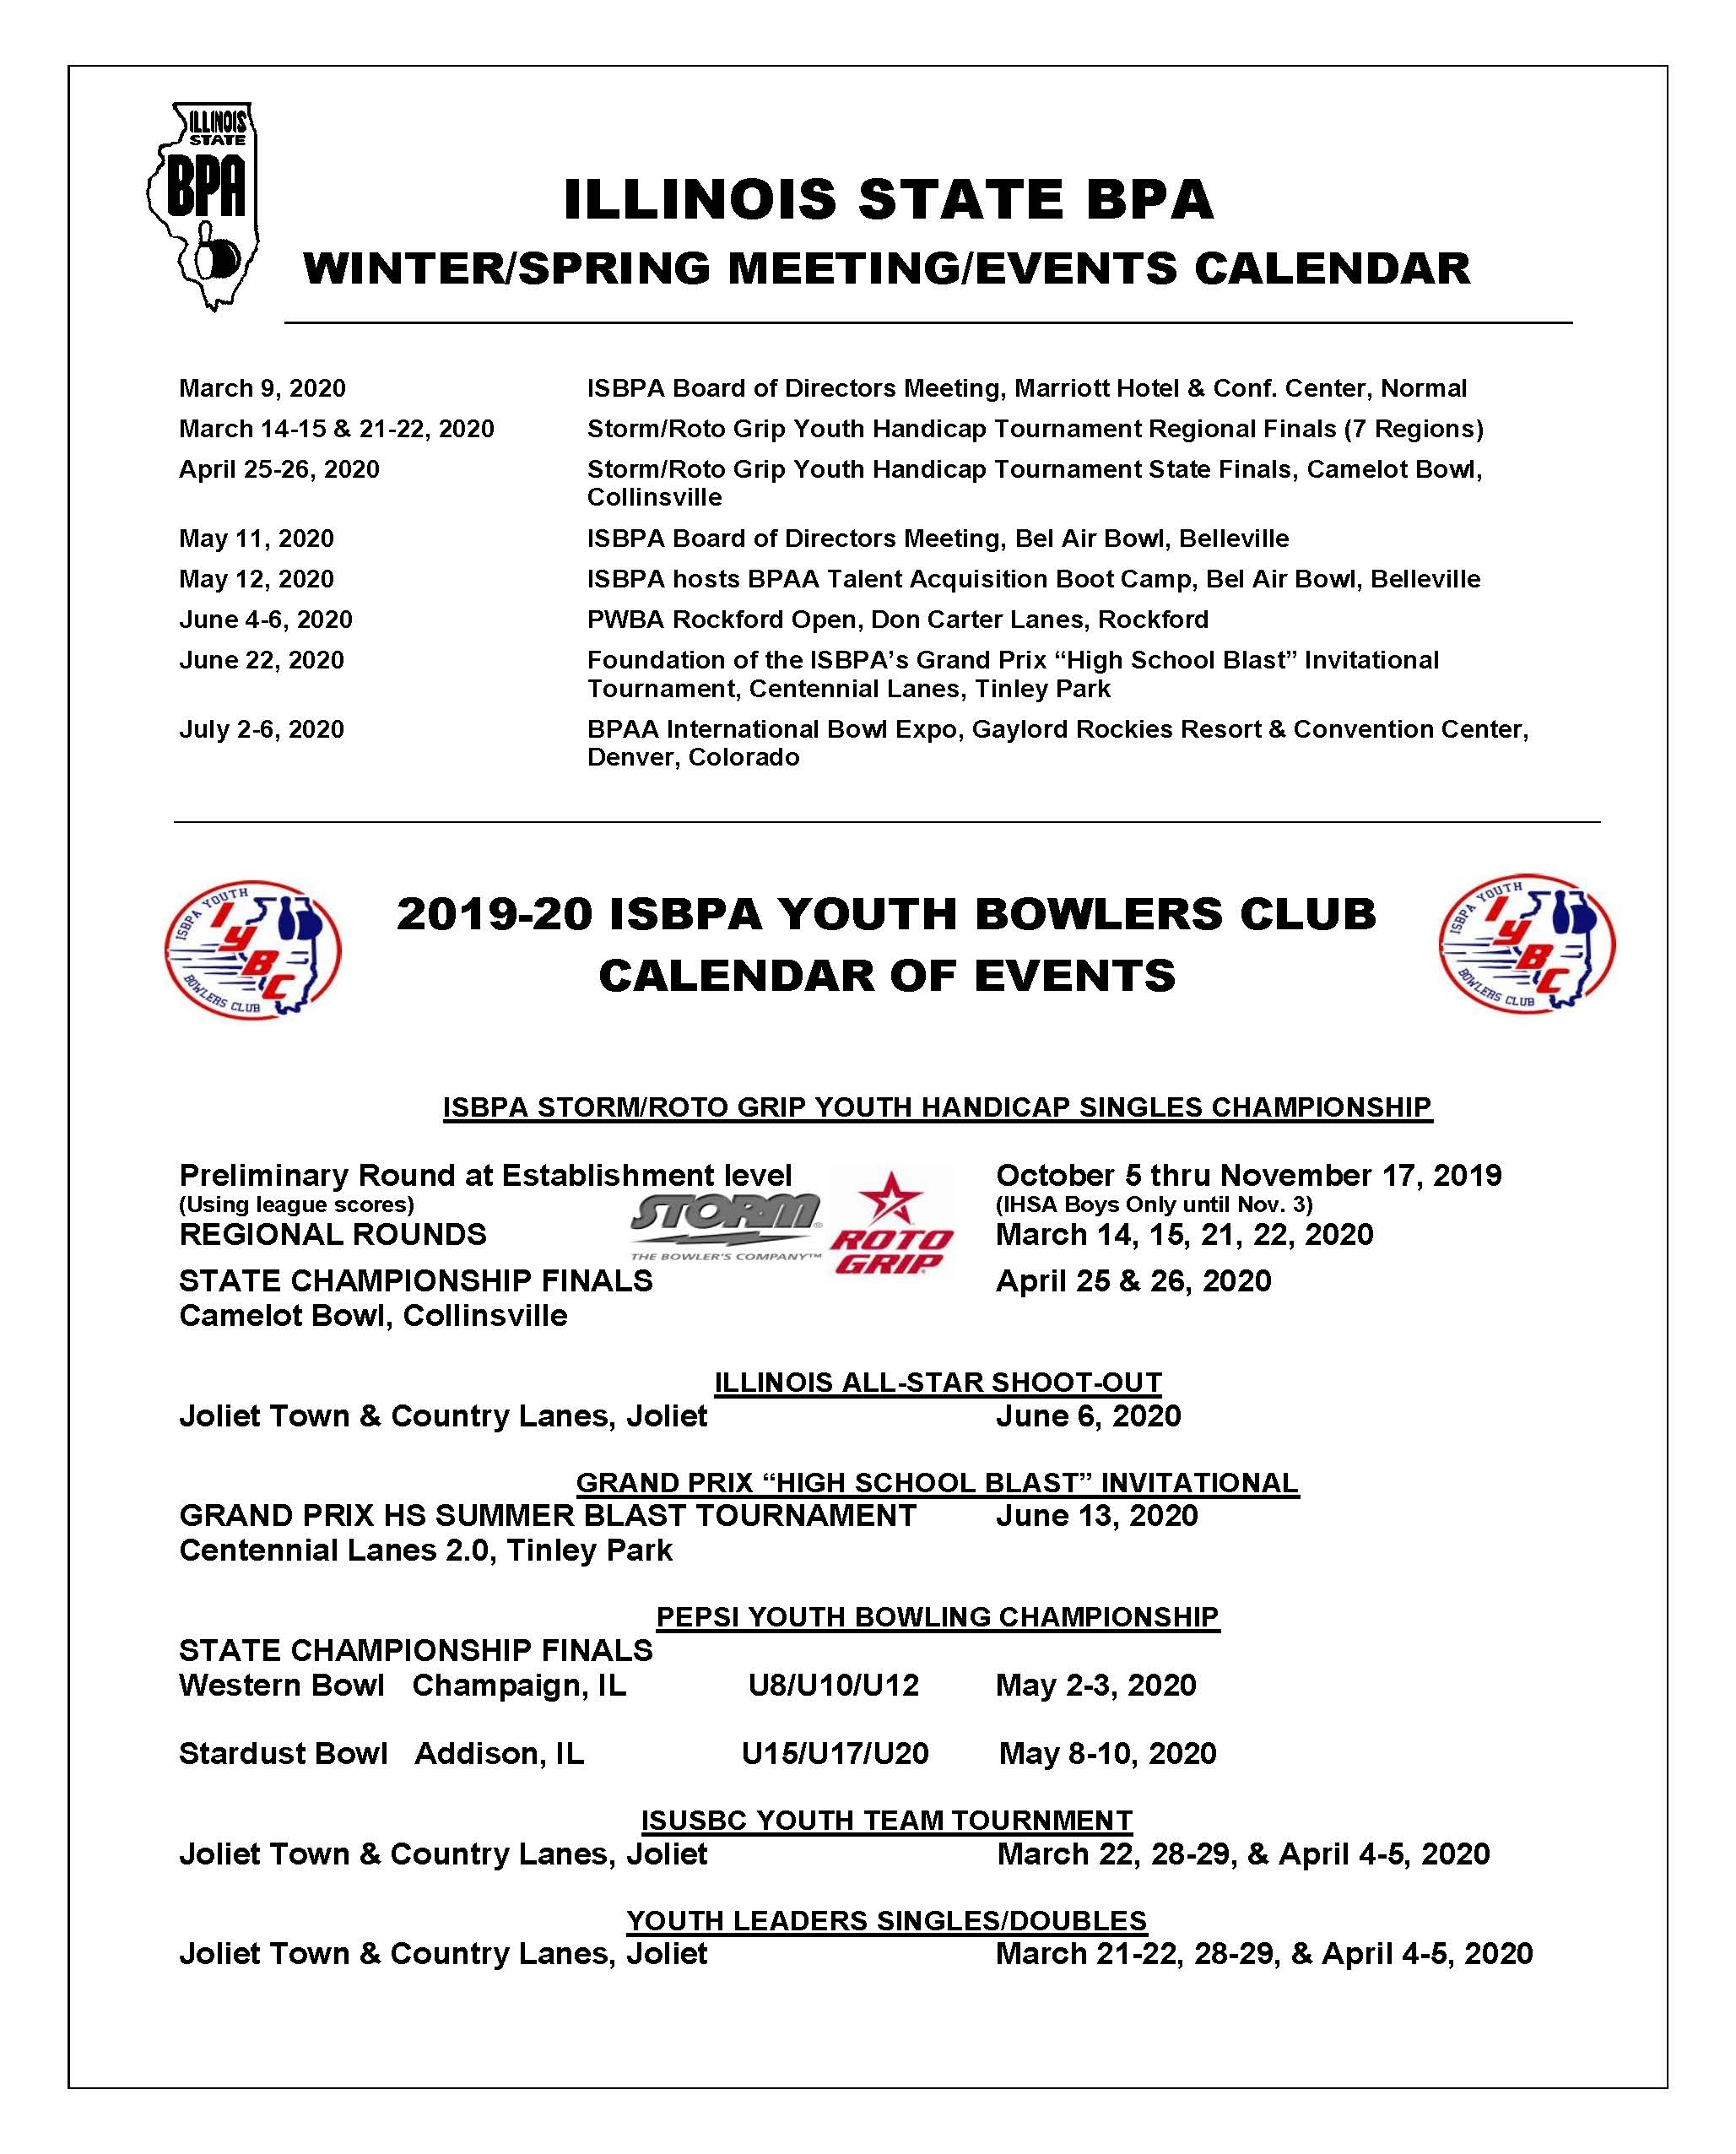 Illinois Calendar Of Events